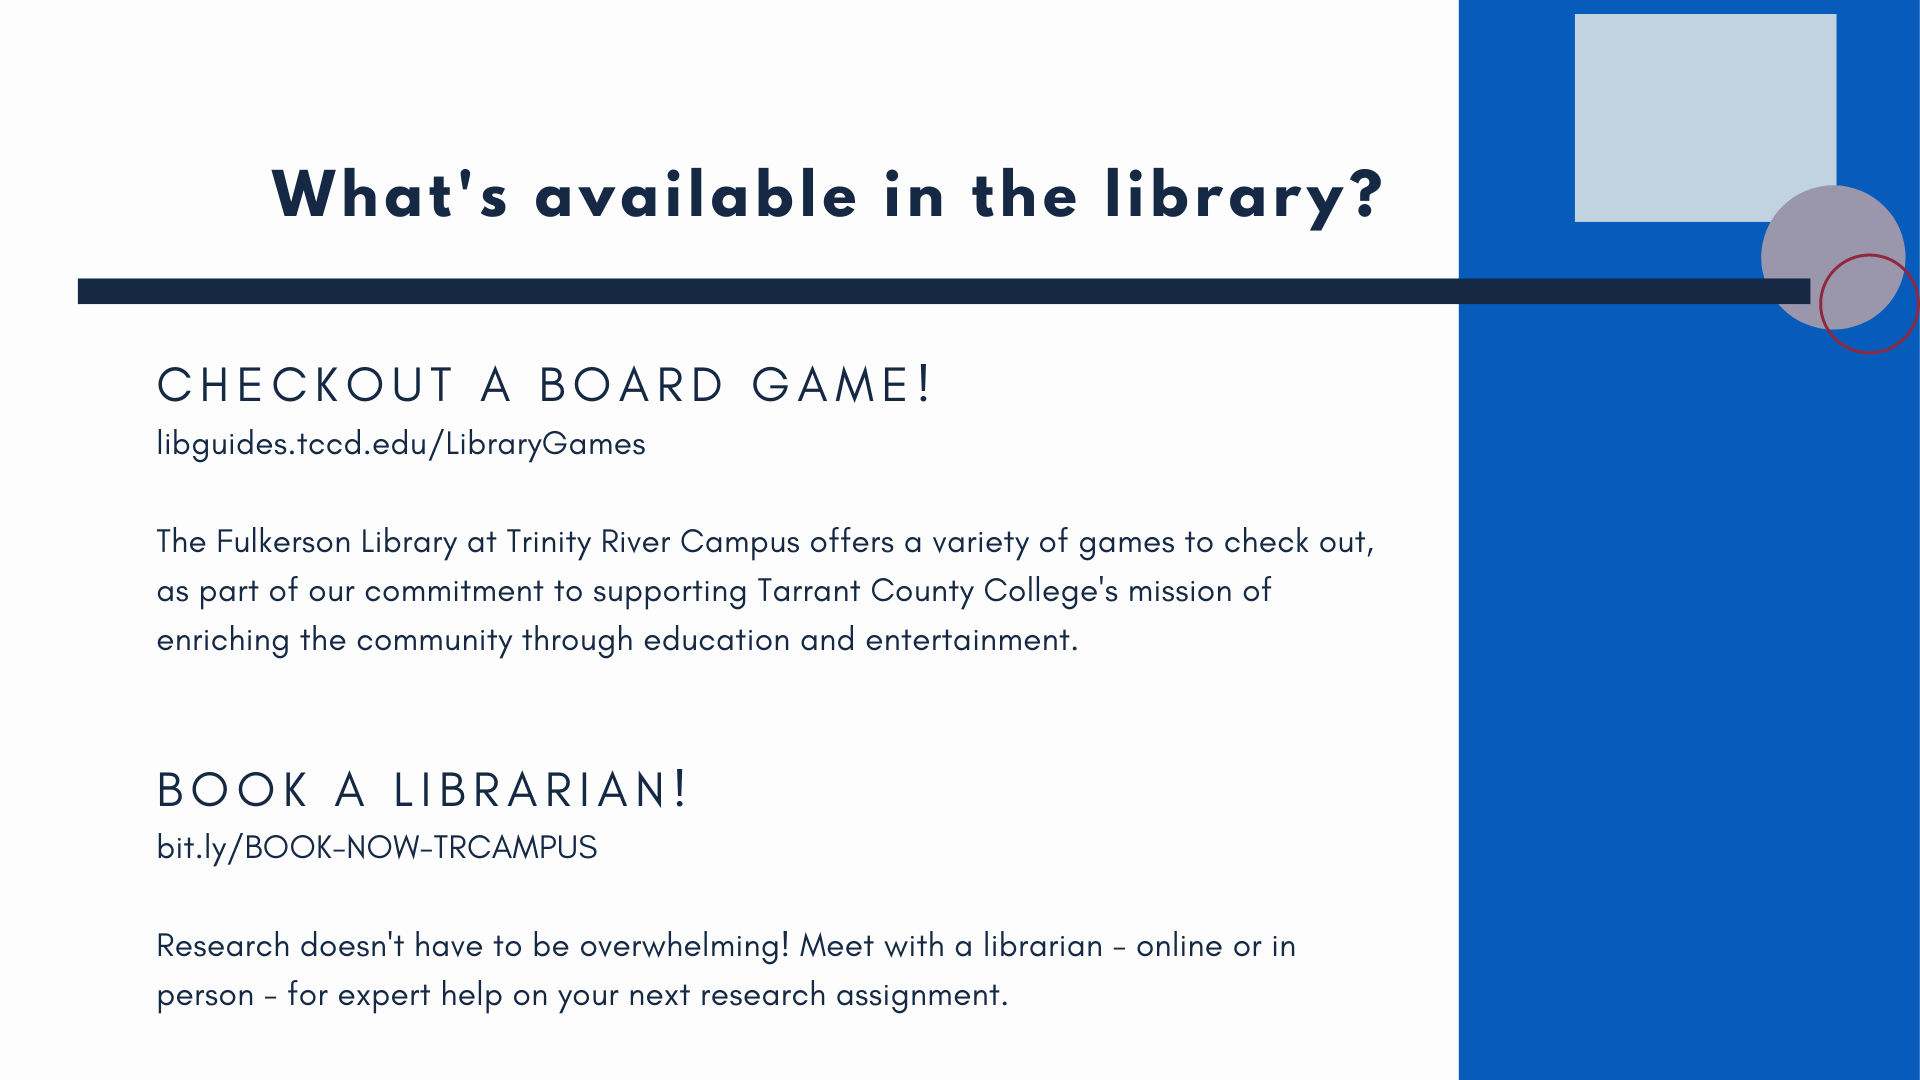 Check out a board game from the Fulkerson Library or book a research appointment with a librarian